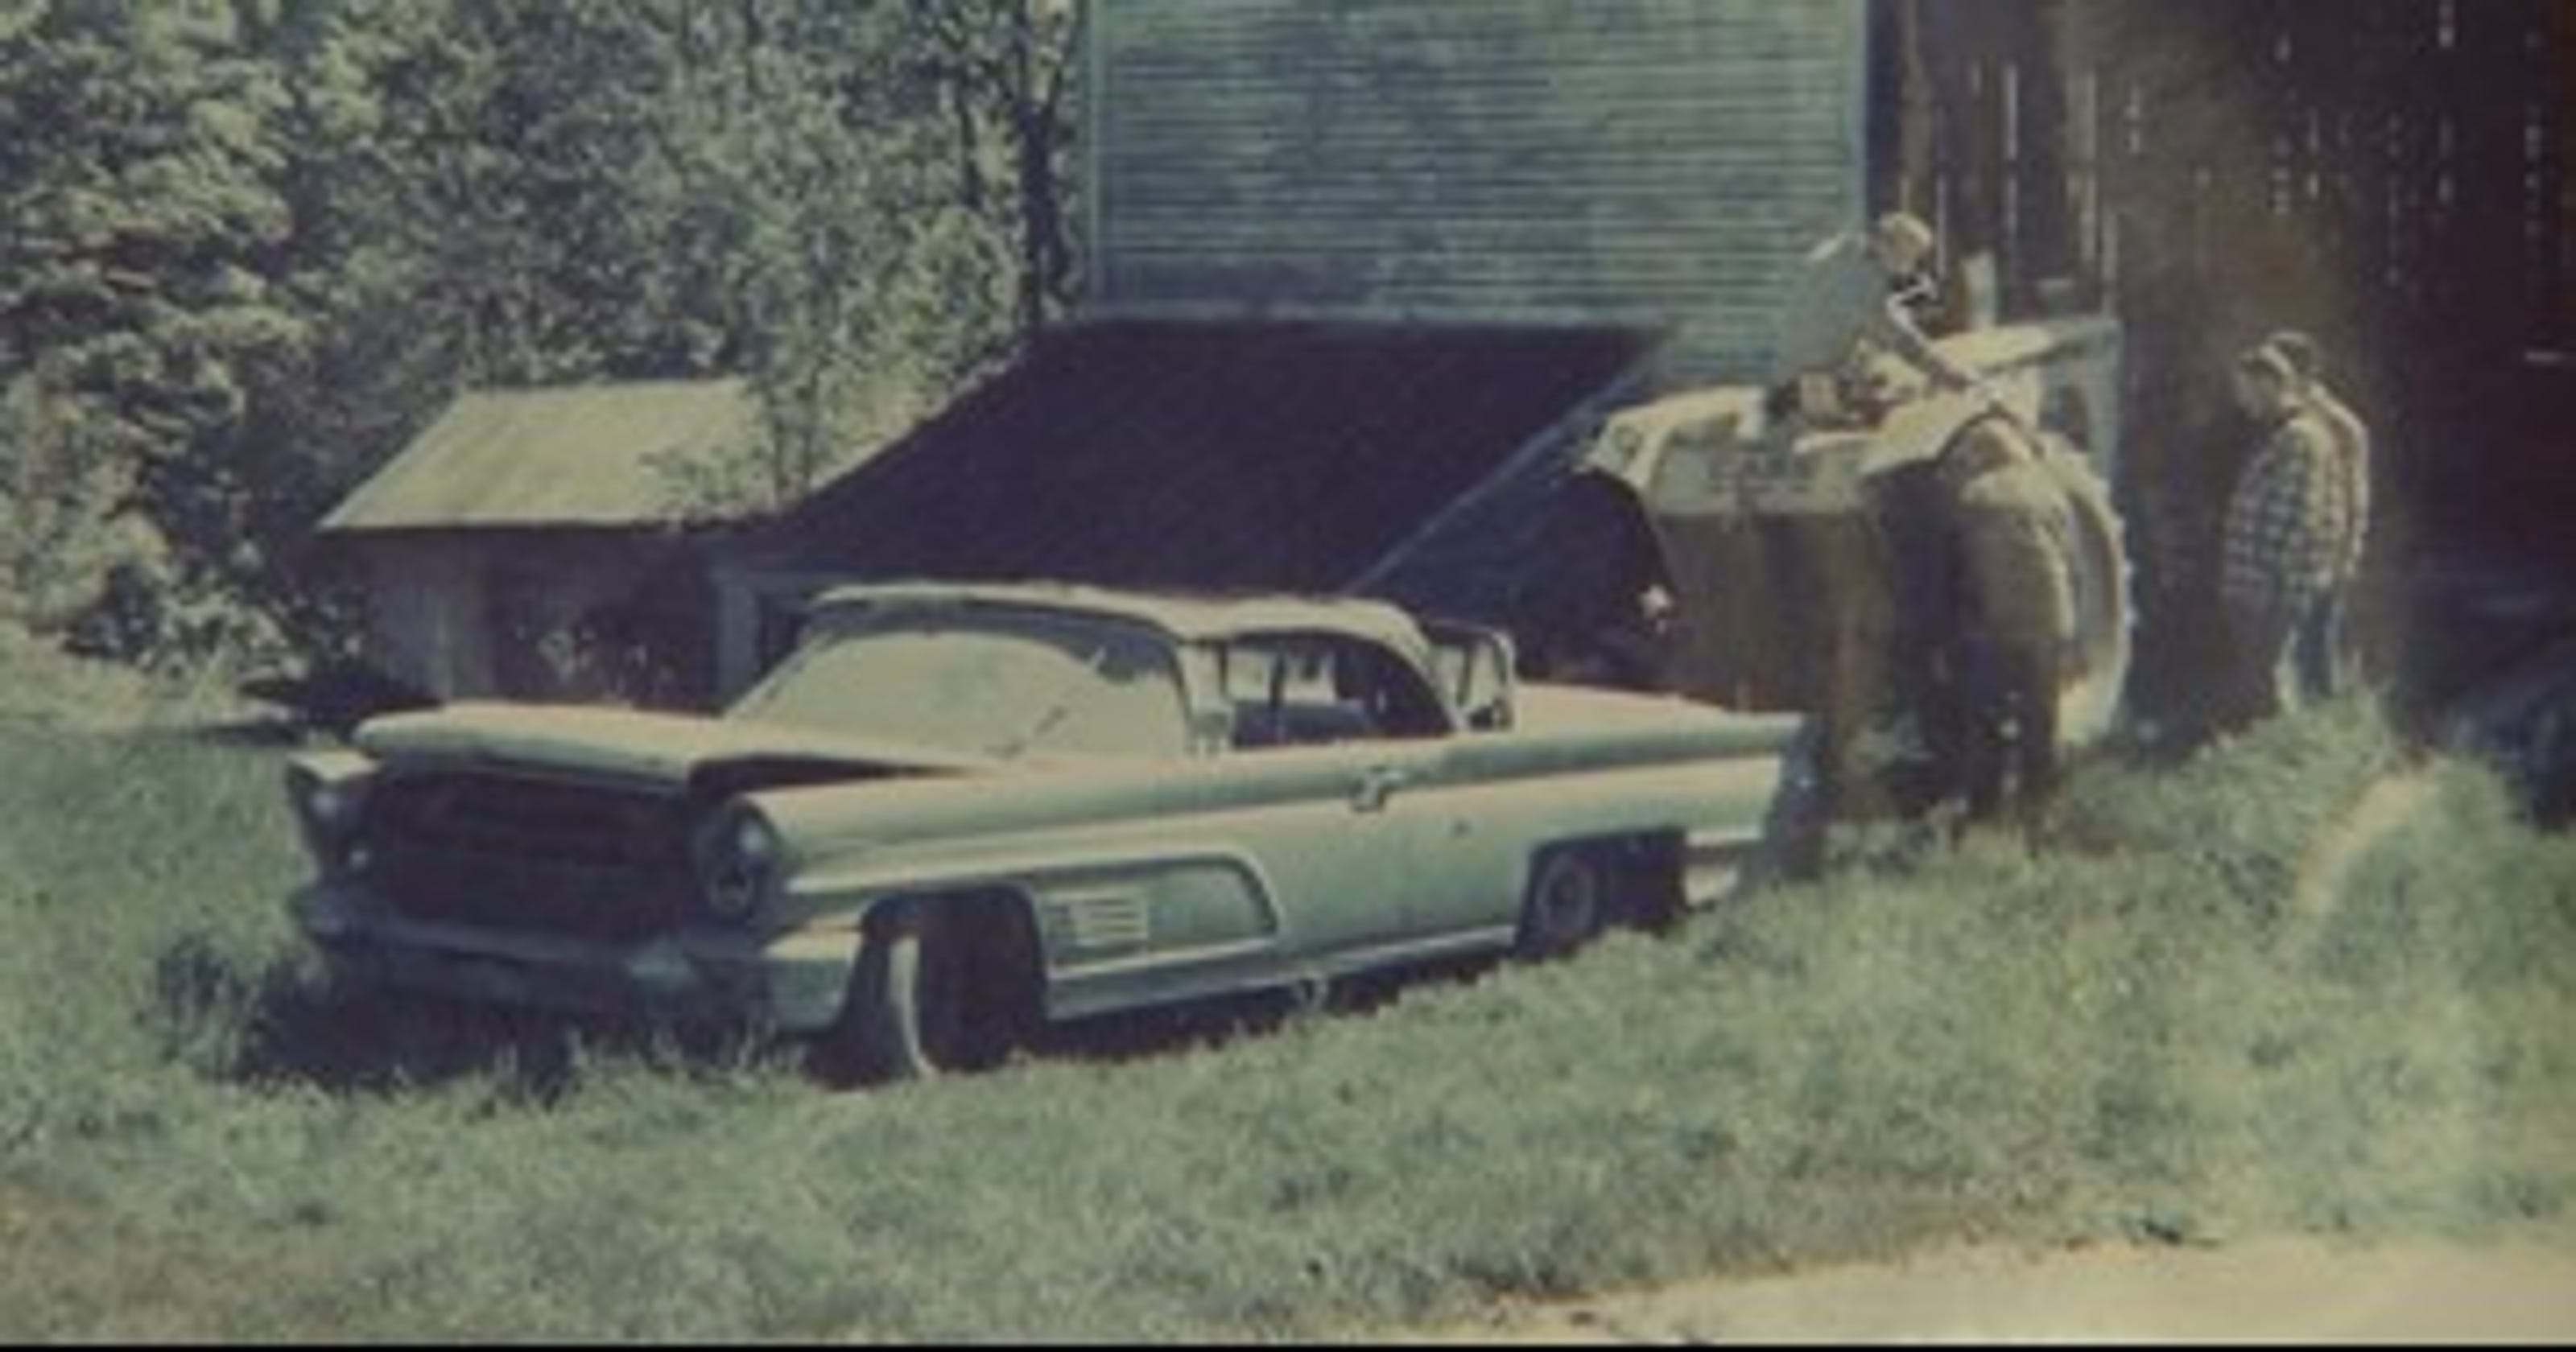 michigan man s mysterious 1960 lincoln may have gruesome history